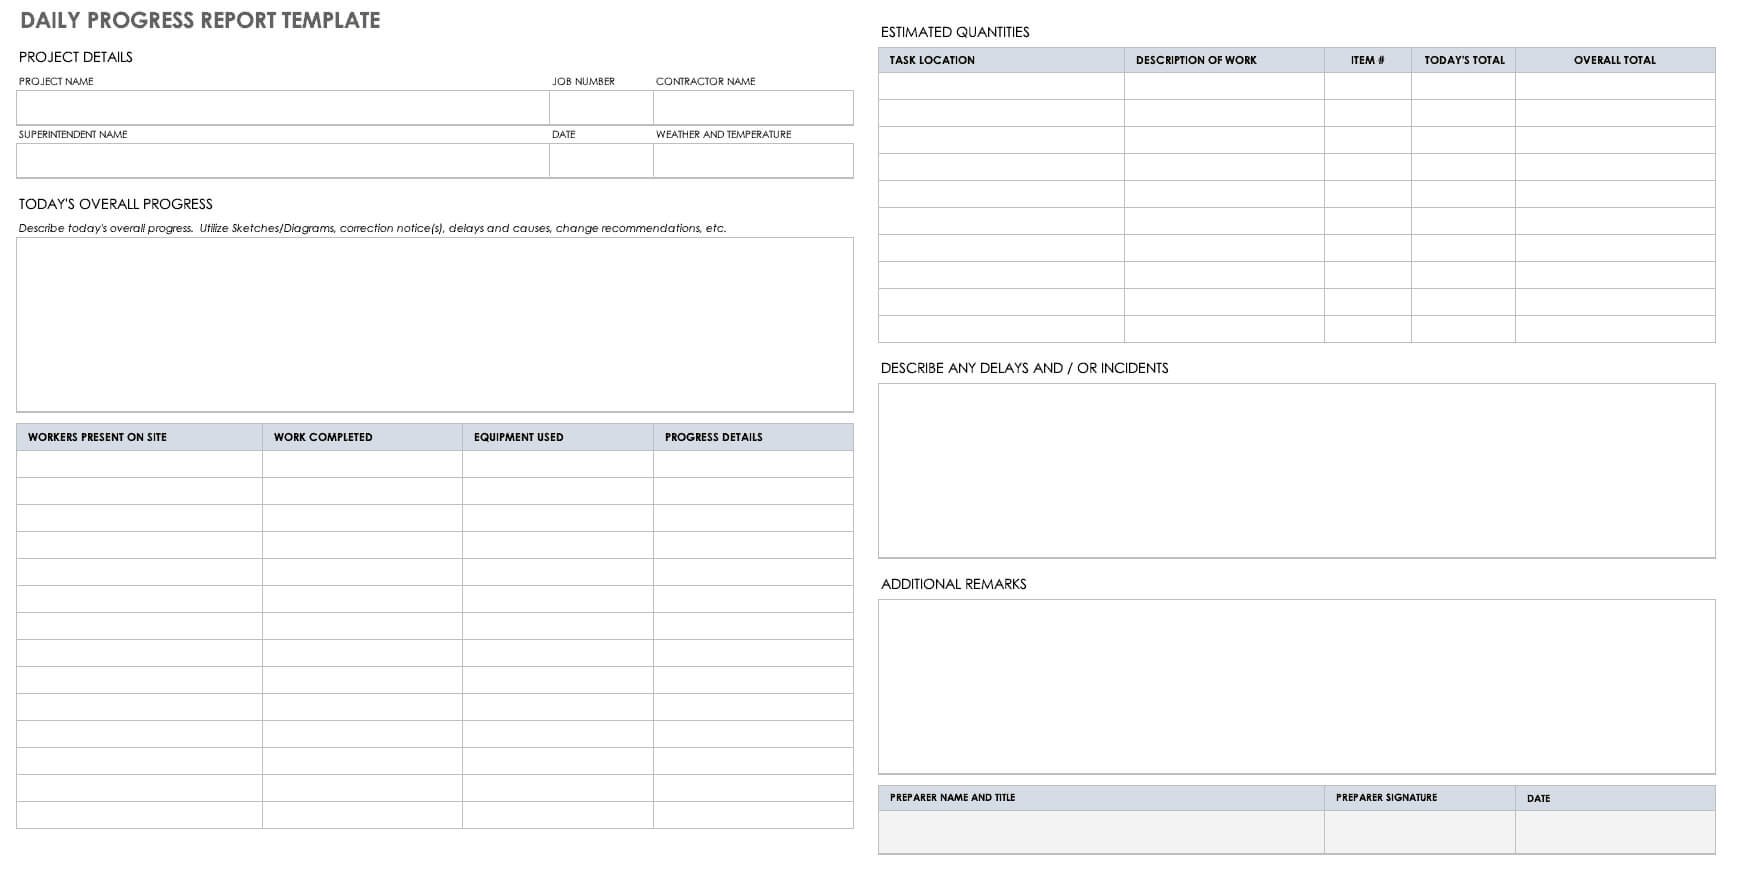 Free Project Report Templates | Smartsheet inside Monthly Project Progress Report Template